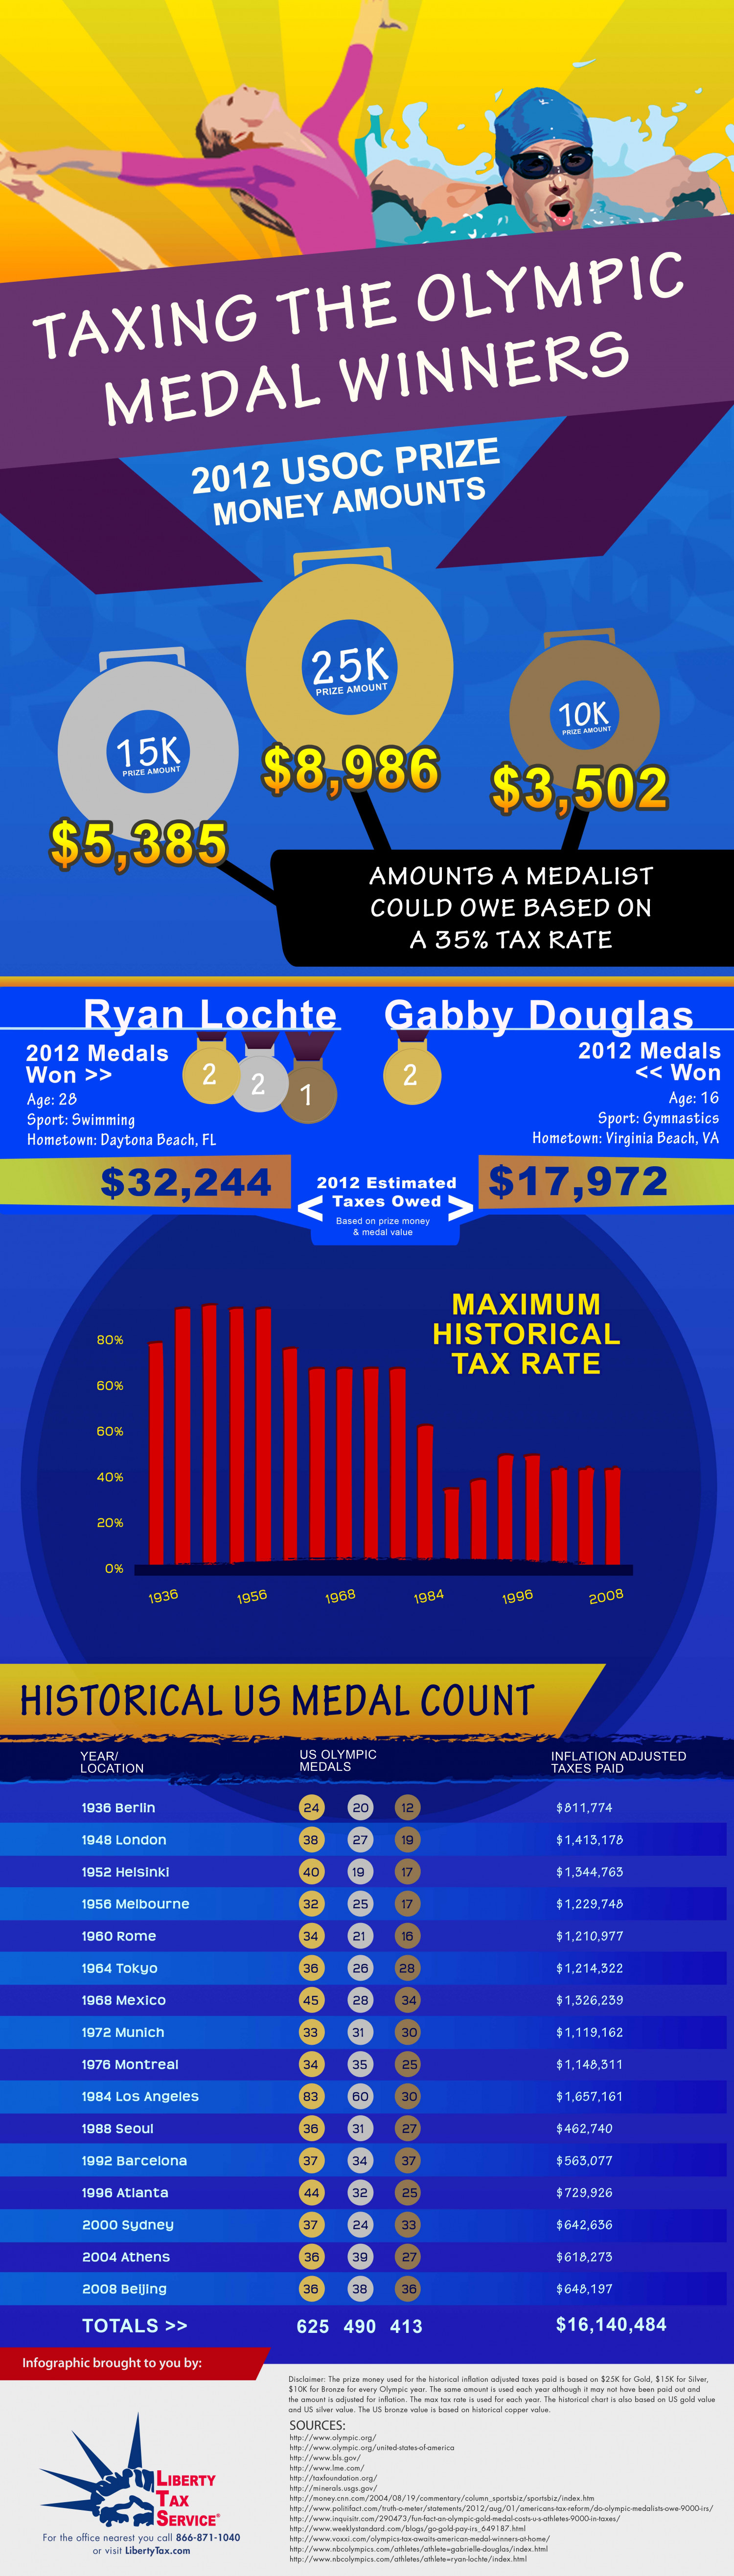 Taxing the Olympic Medal Winners Infographic